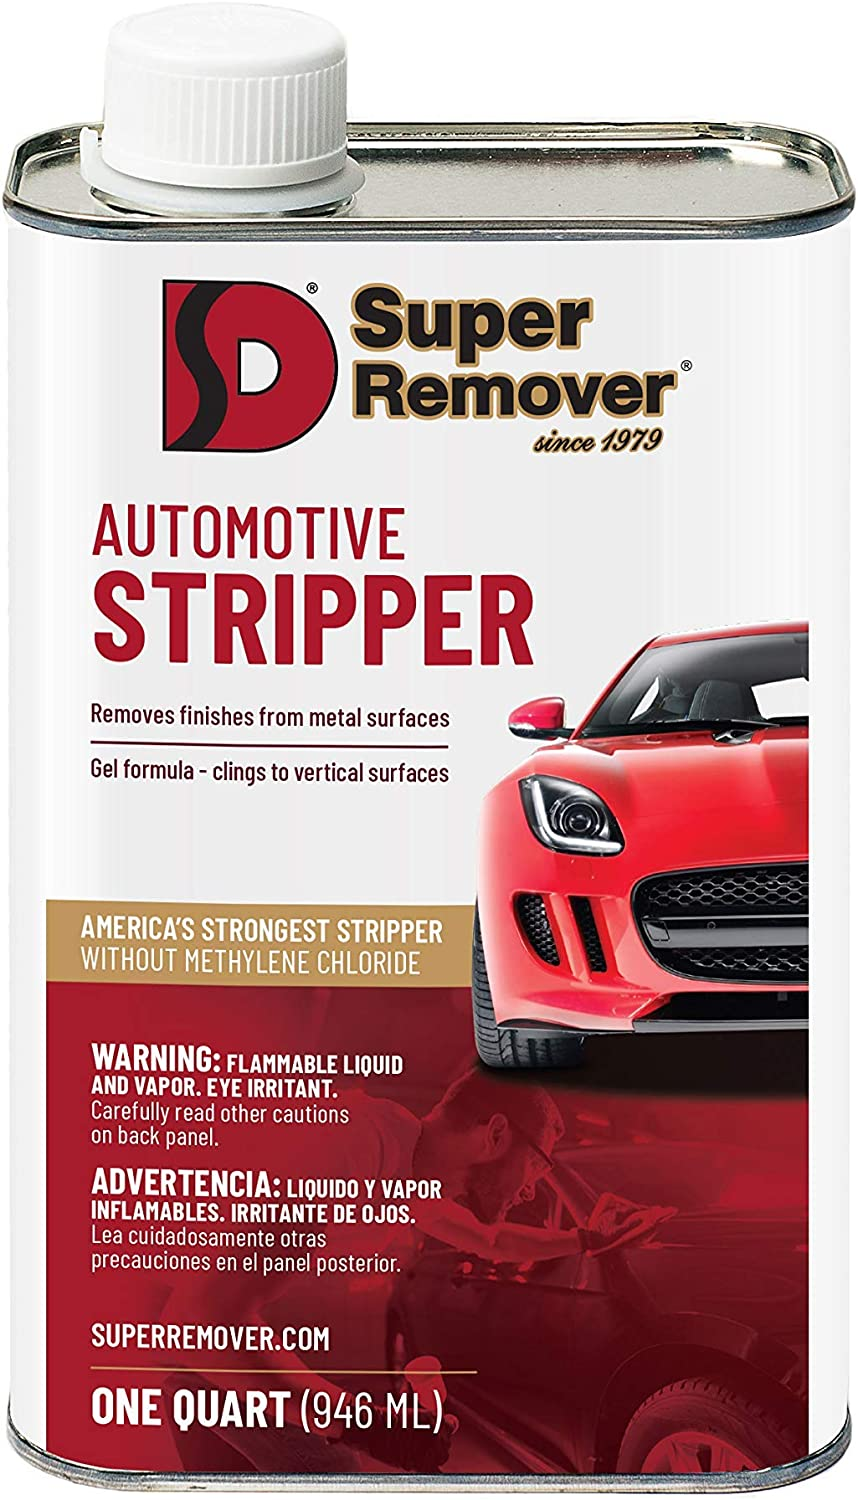 Automotive Stripper